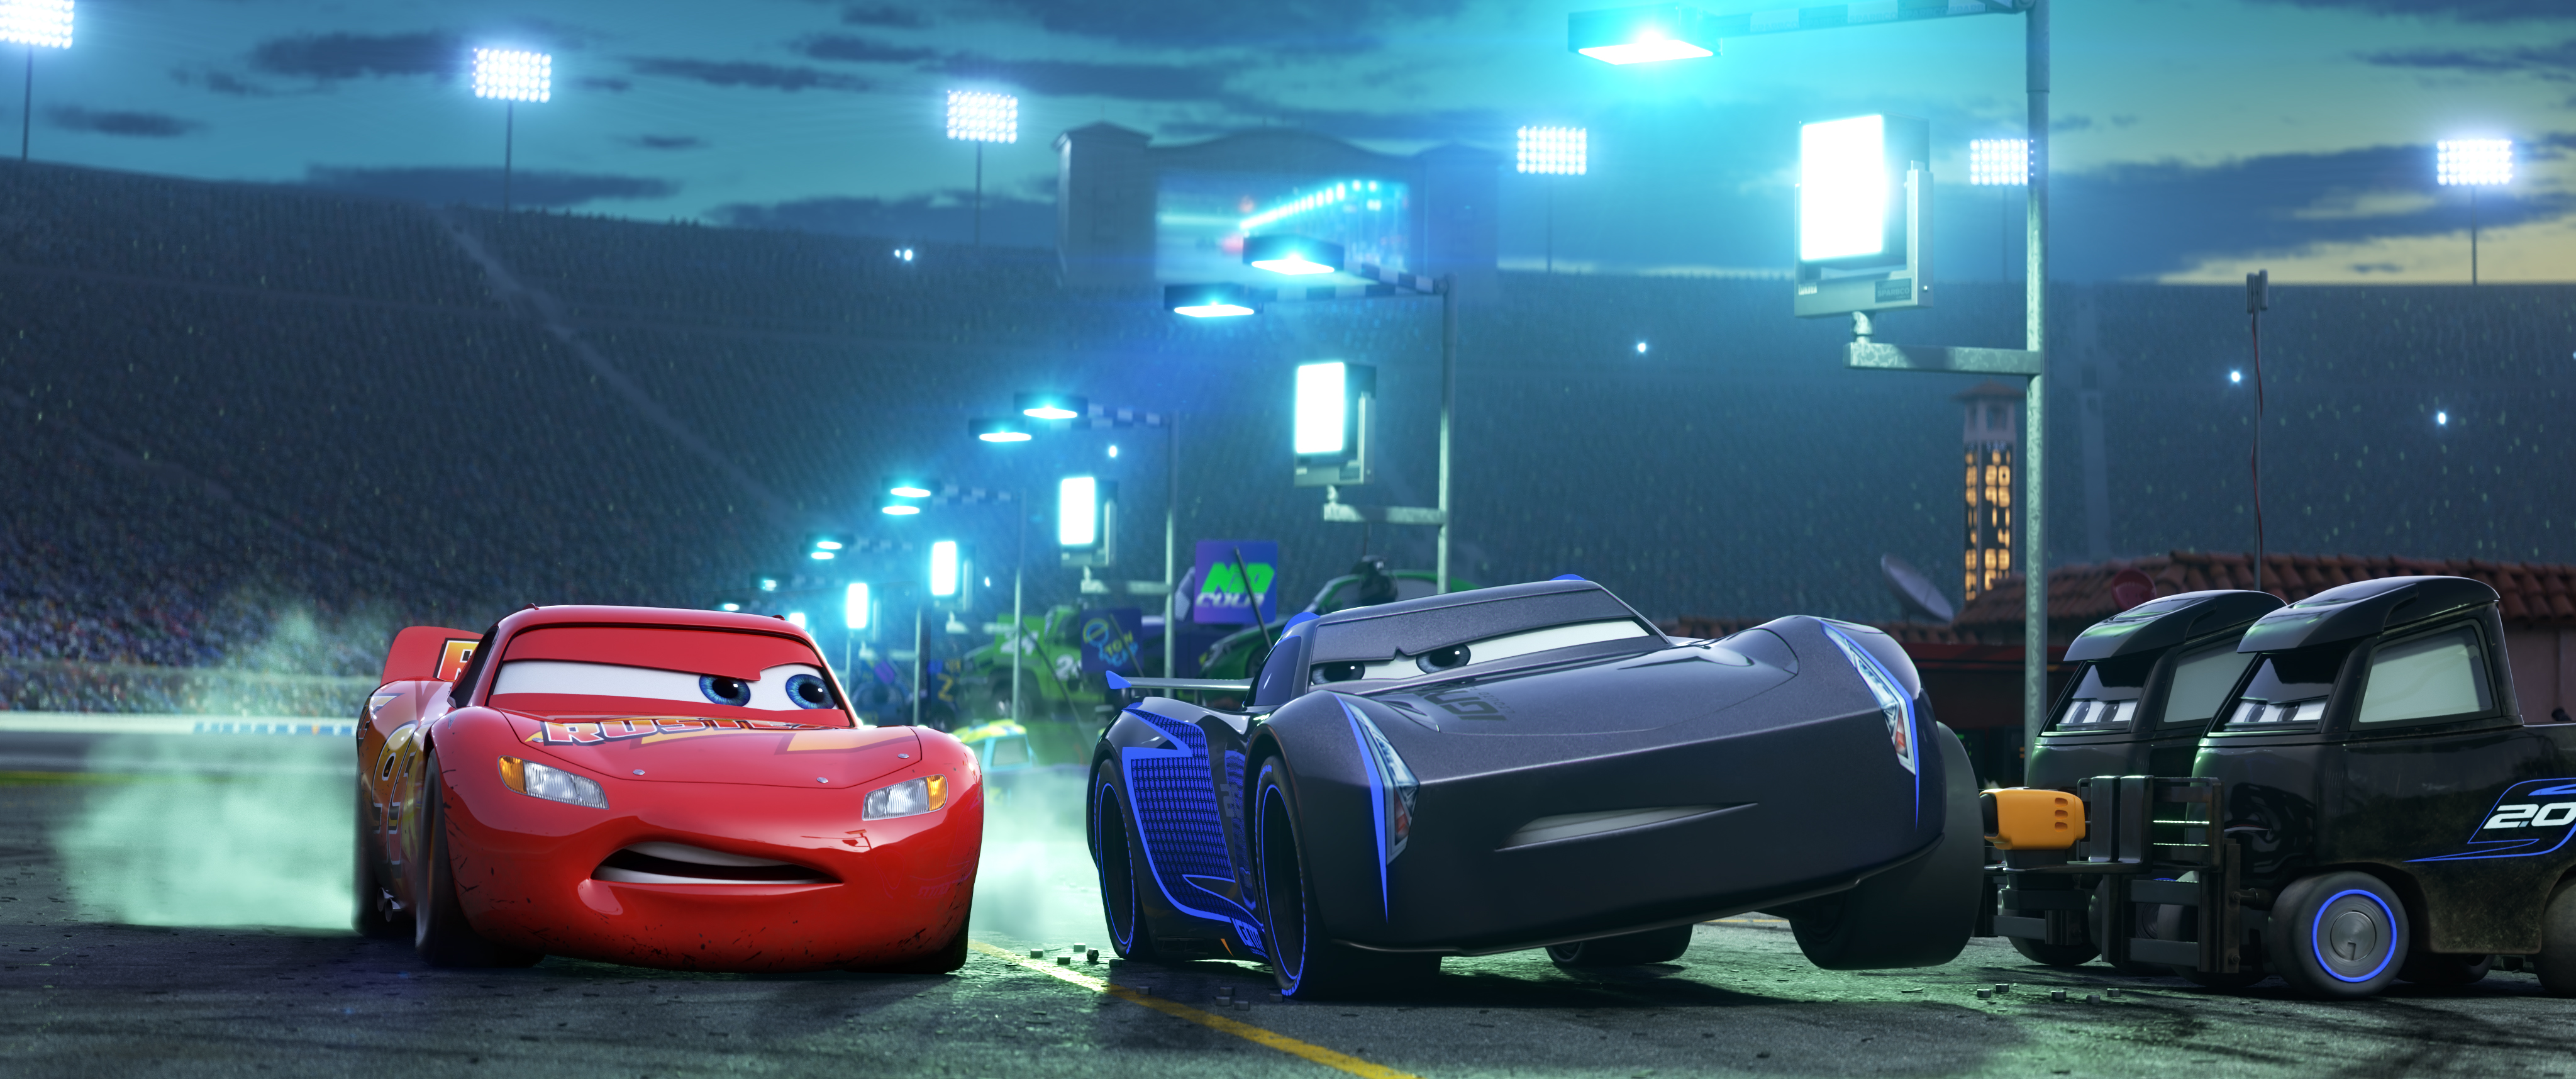 """What I Hope to See in """"Cars 3"""""""